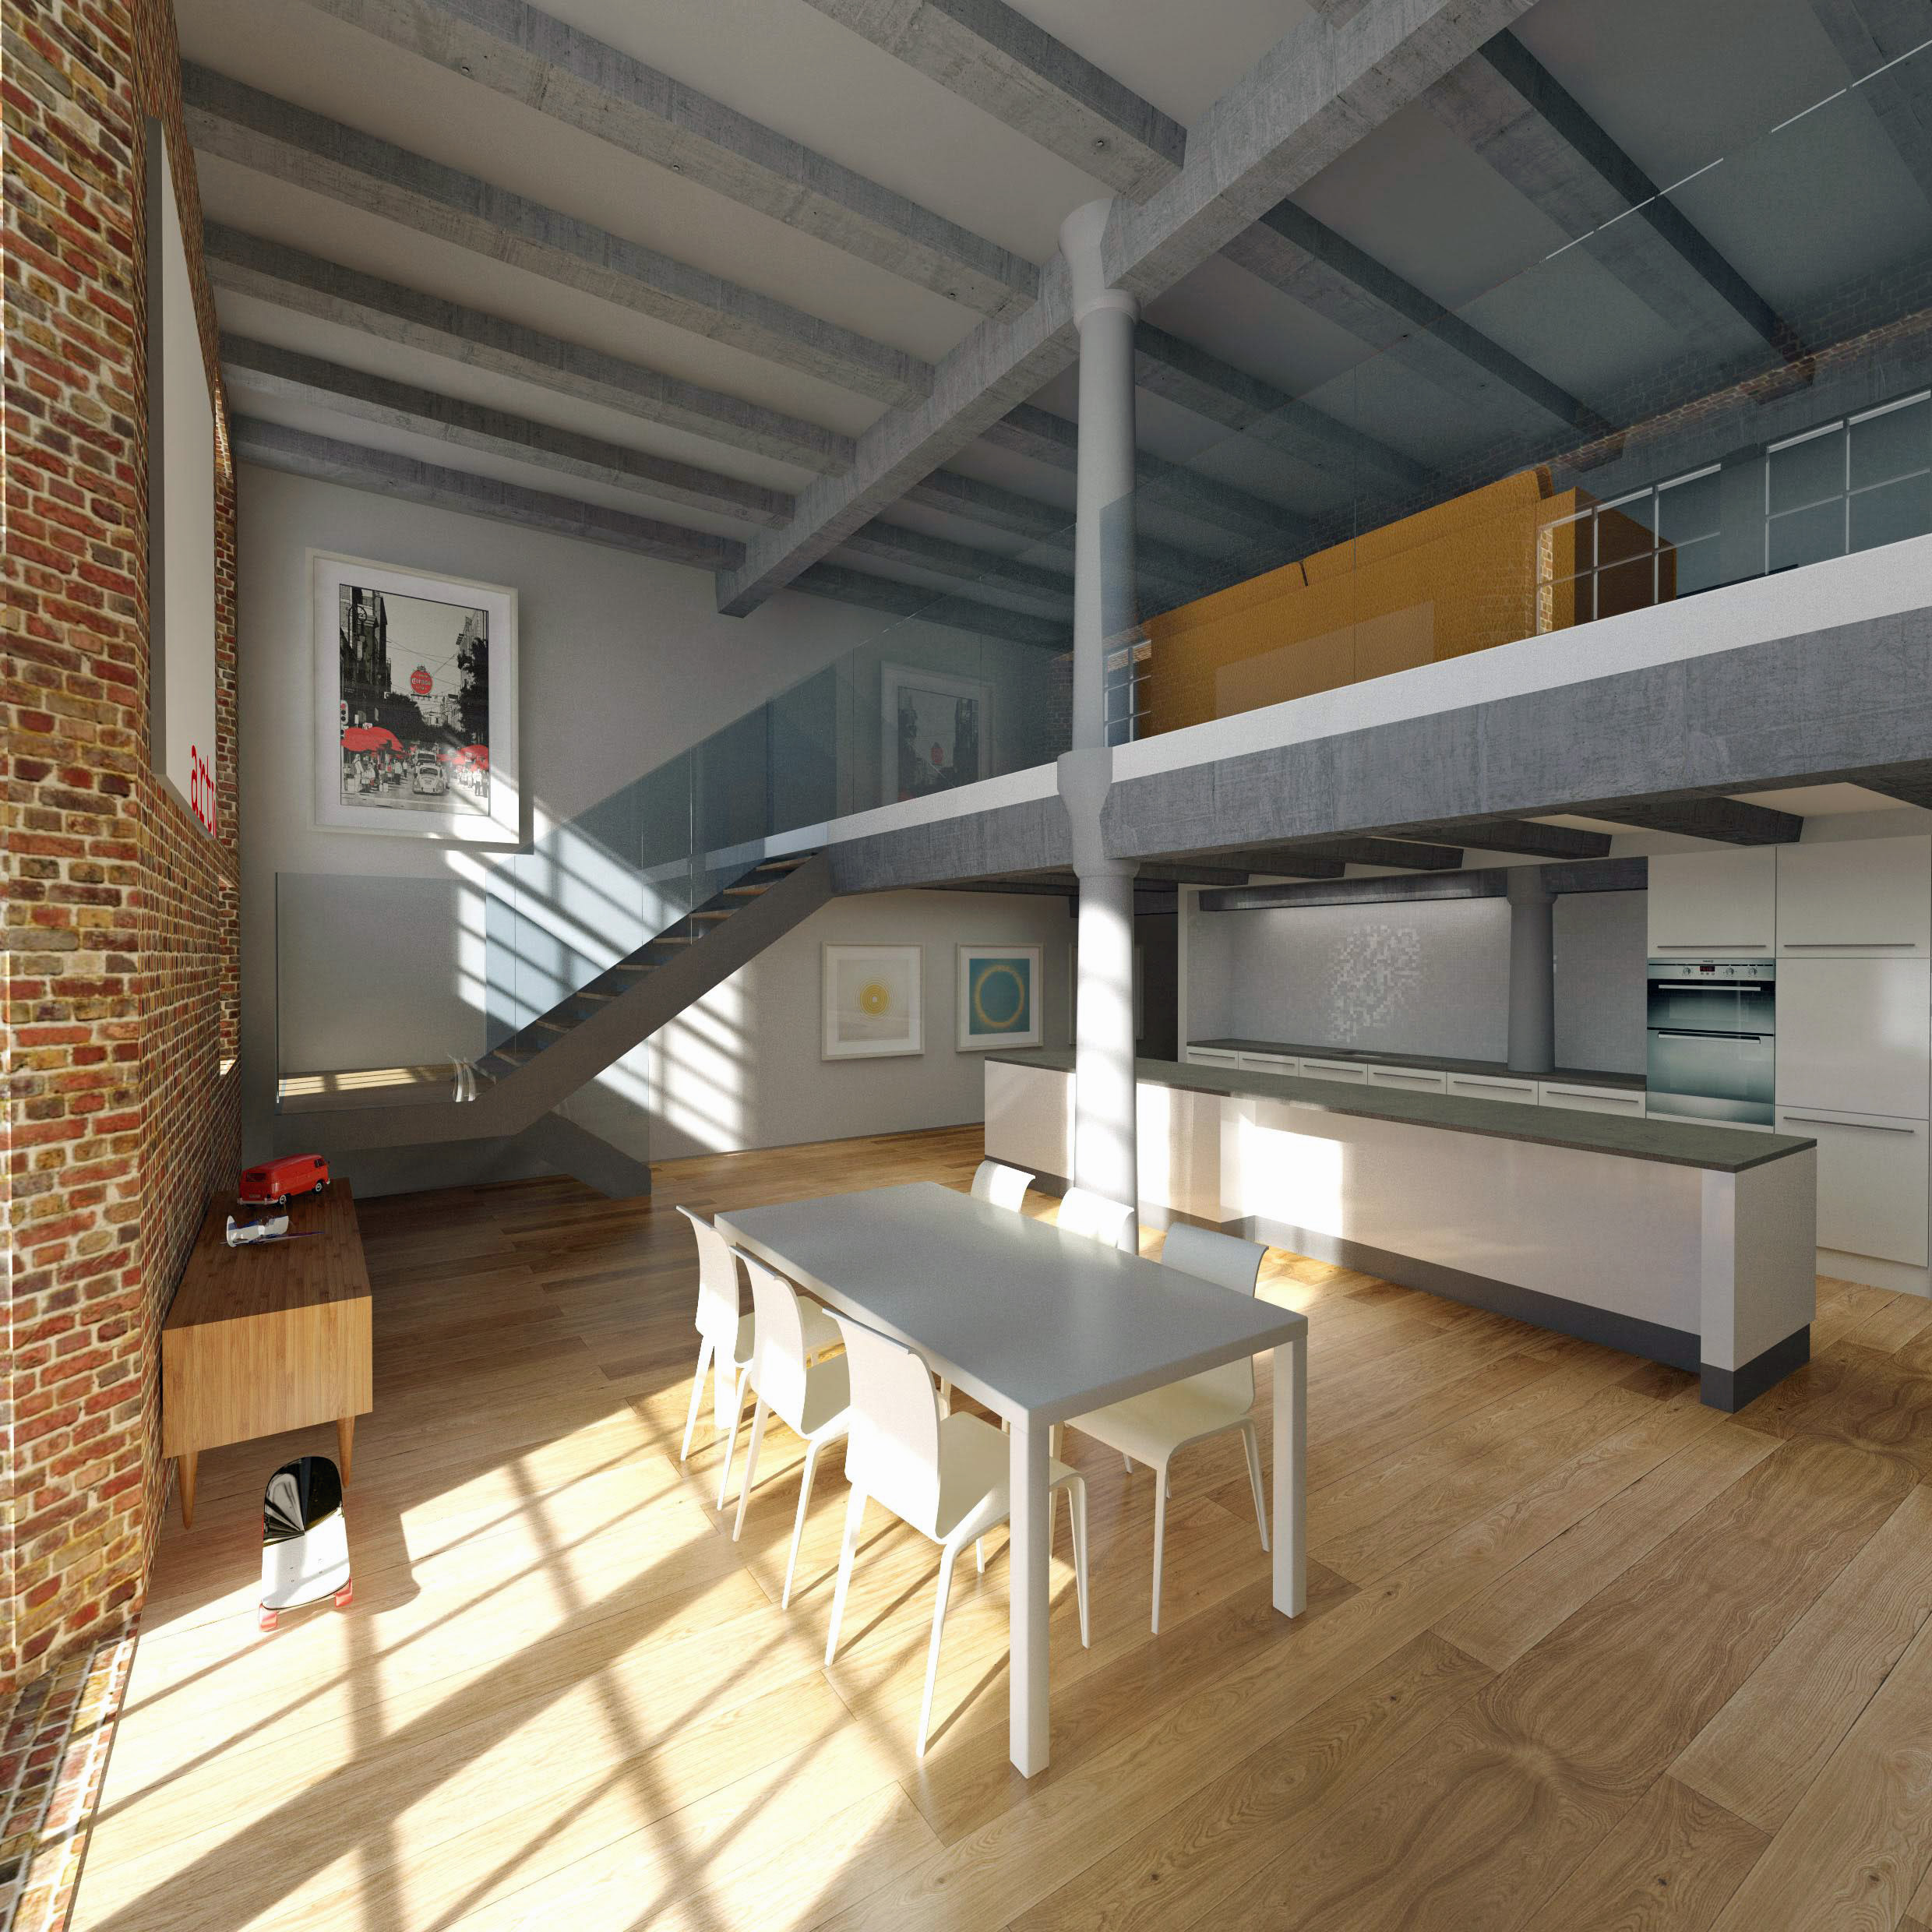 Apartments Interior Tobacco Warehouse 2016